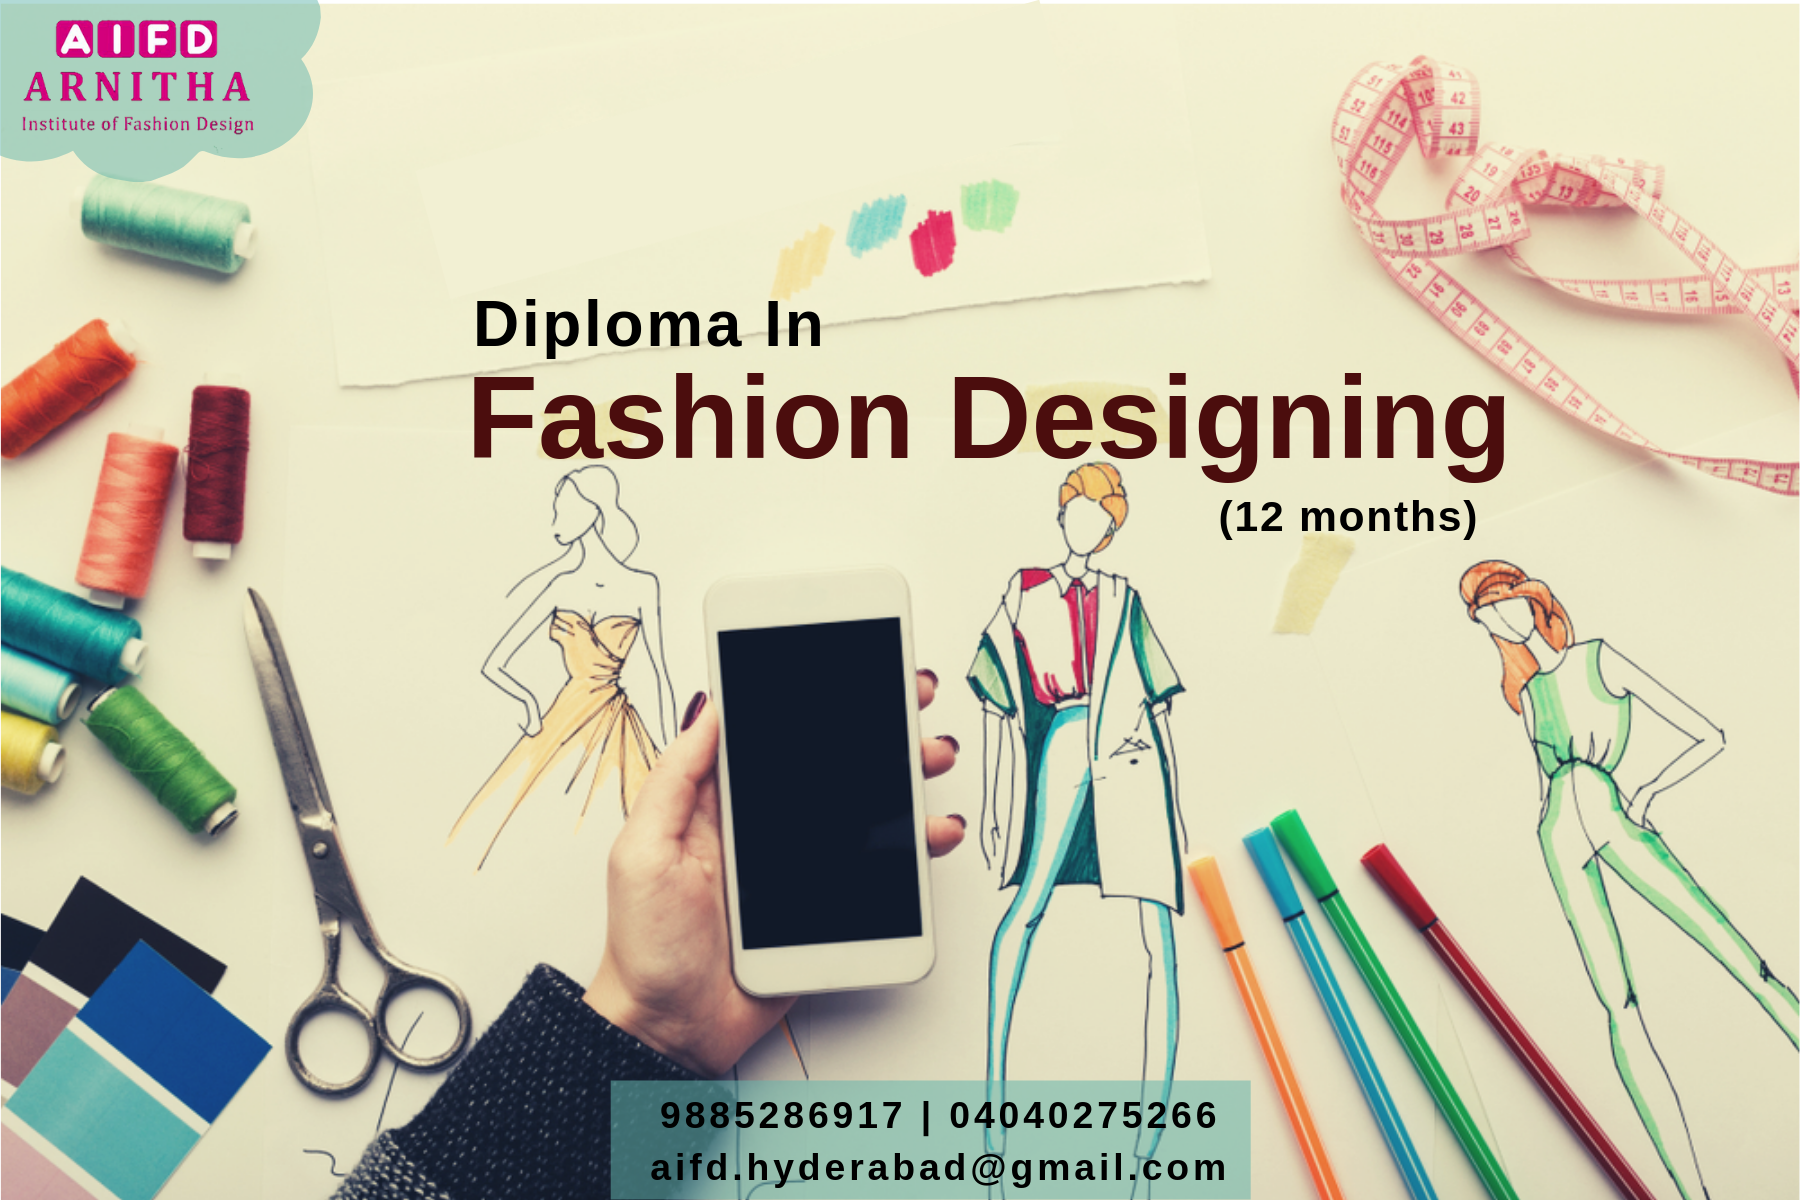 Diploma In Fashion Designing Fashiondesigner Fashiondesign Fashionlife Fashionlove Diploma In Fashion Designing Career In Fashion Designing Fashion Design